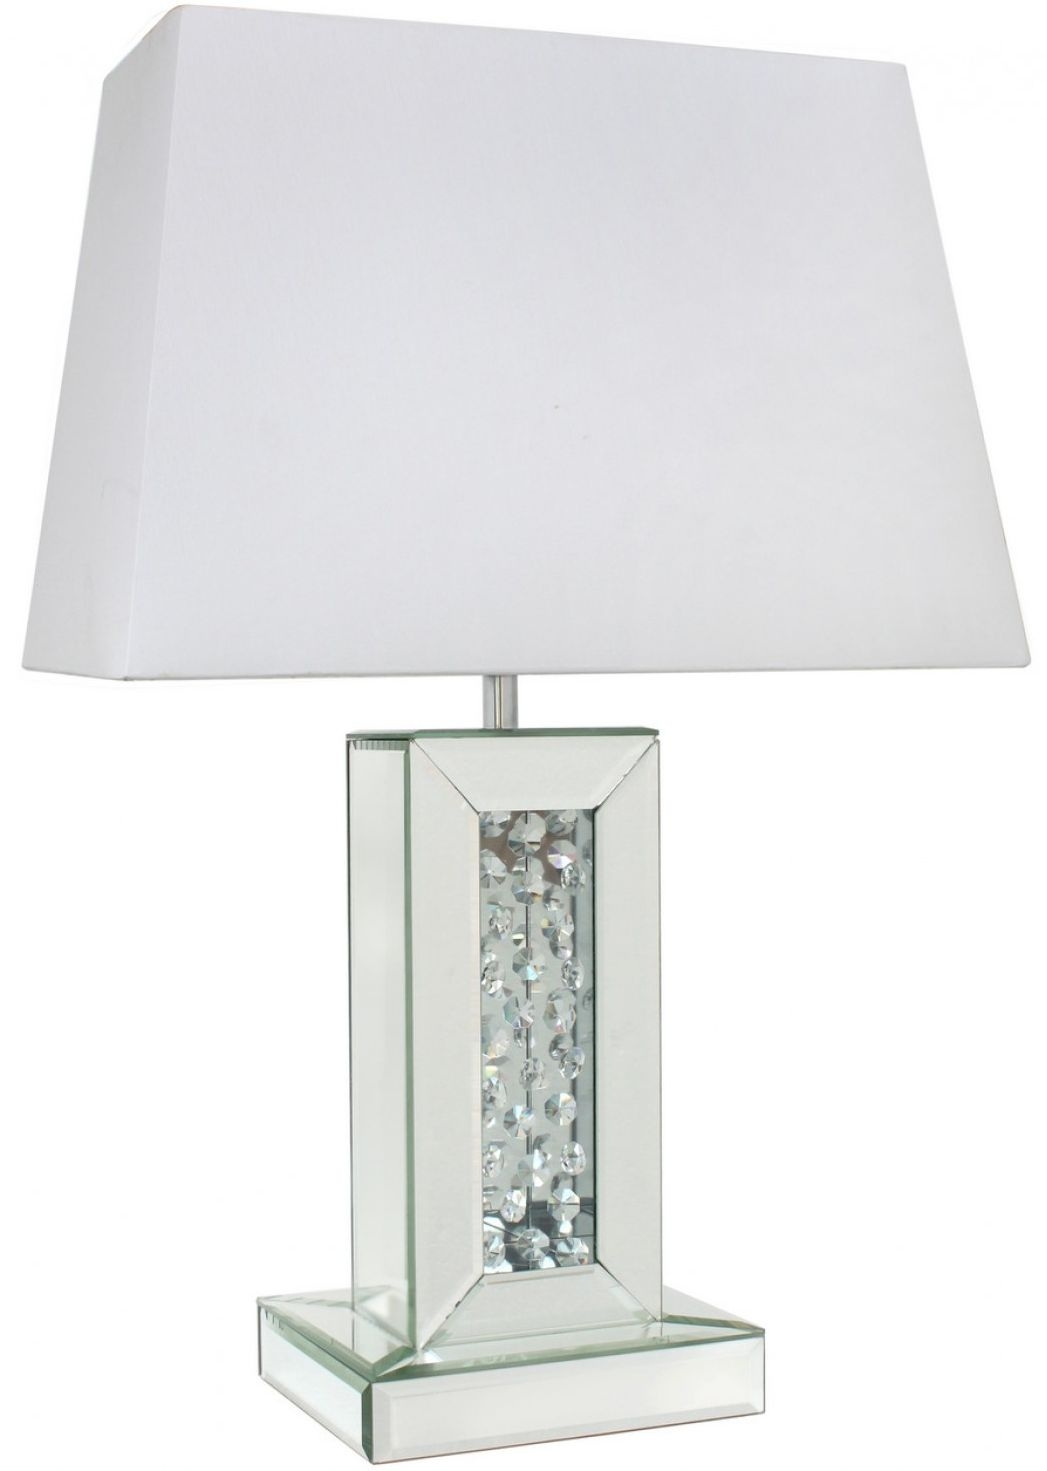 Alice Mirror Small Table Lamp With Rectangular 16inch